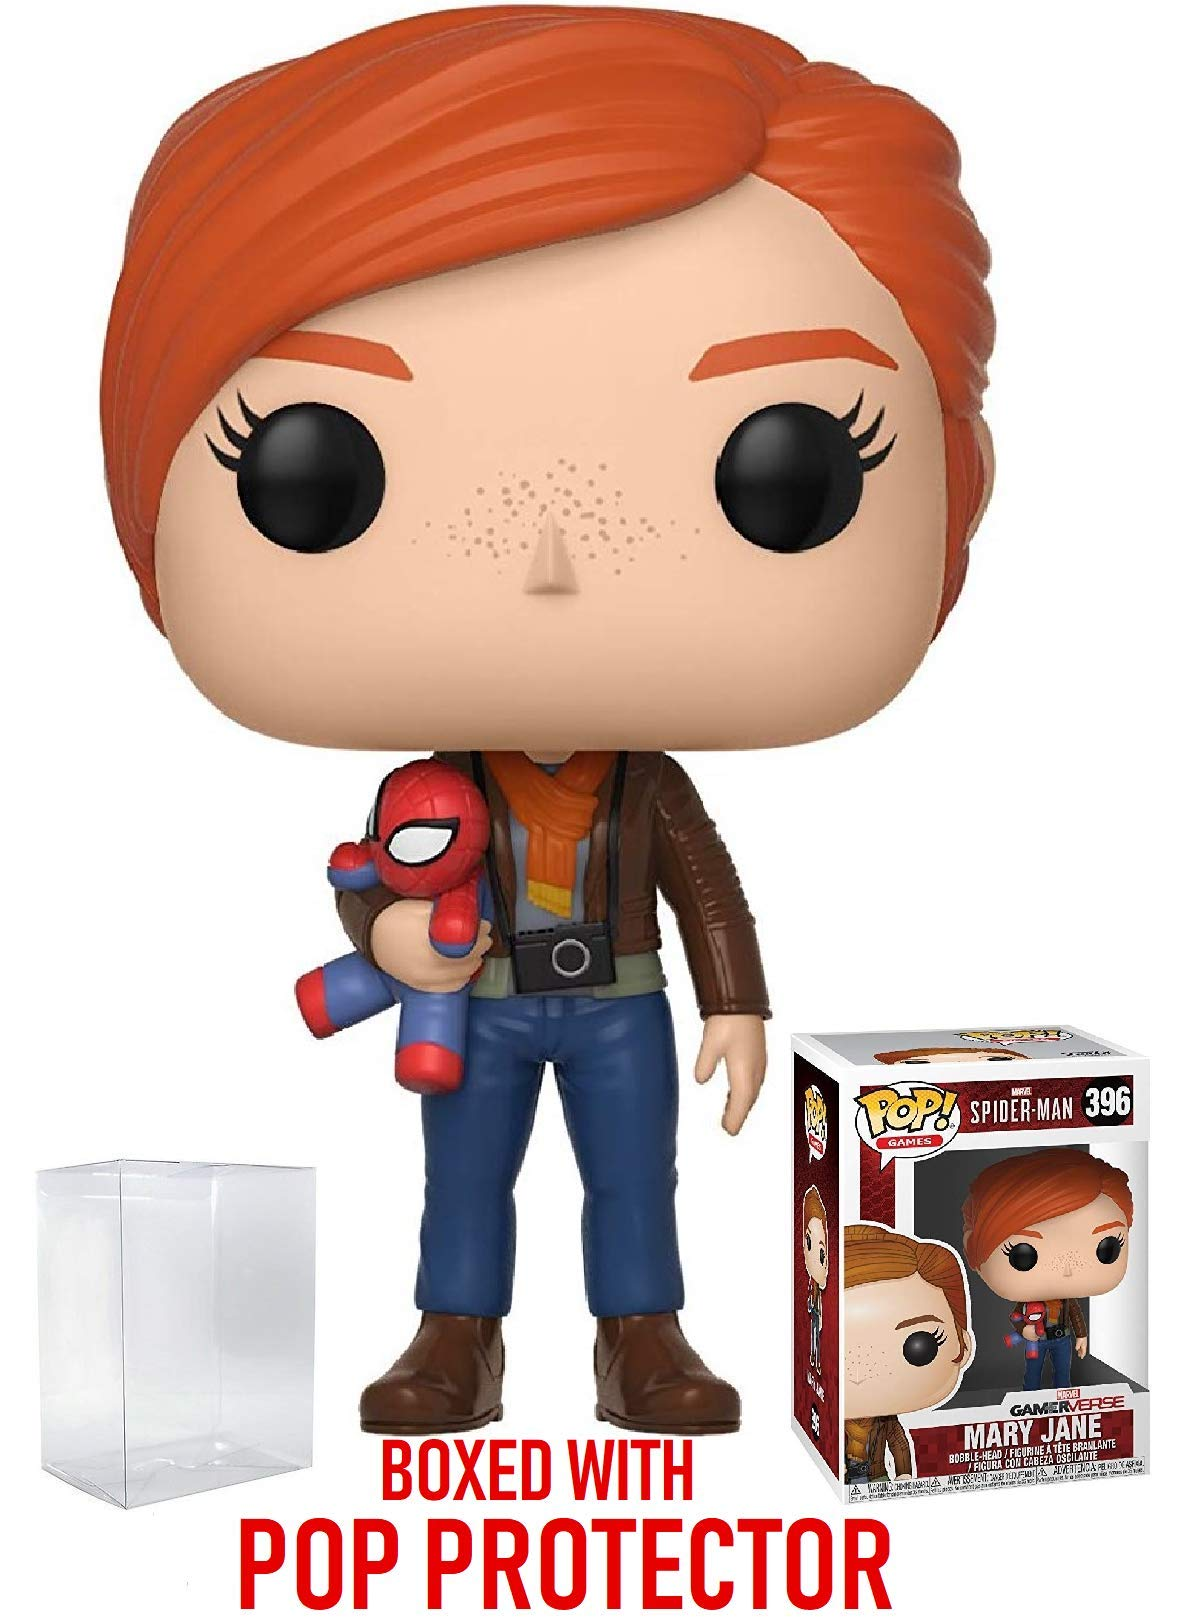 Funko Pop! Marvel: Spider-Man Video Game - Mary Jane Vinyl Figure (Bundled with Pop Box Protector Case) by Funko (Image #1)